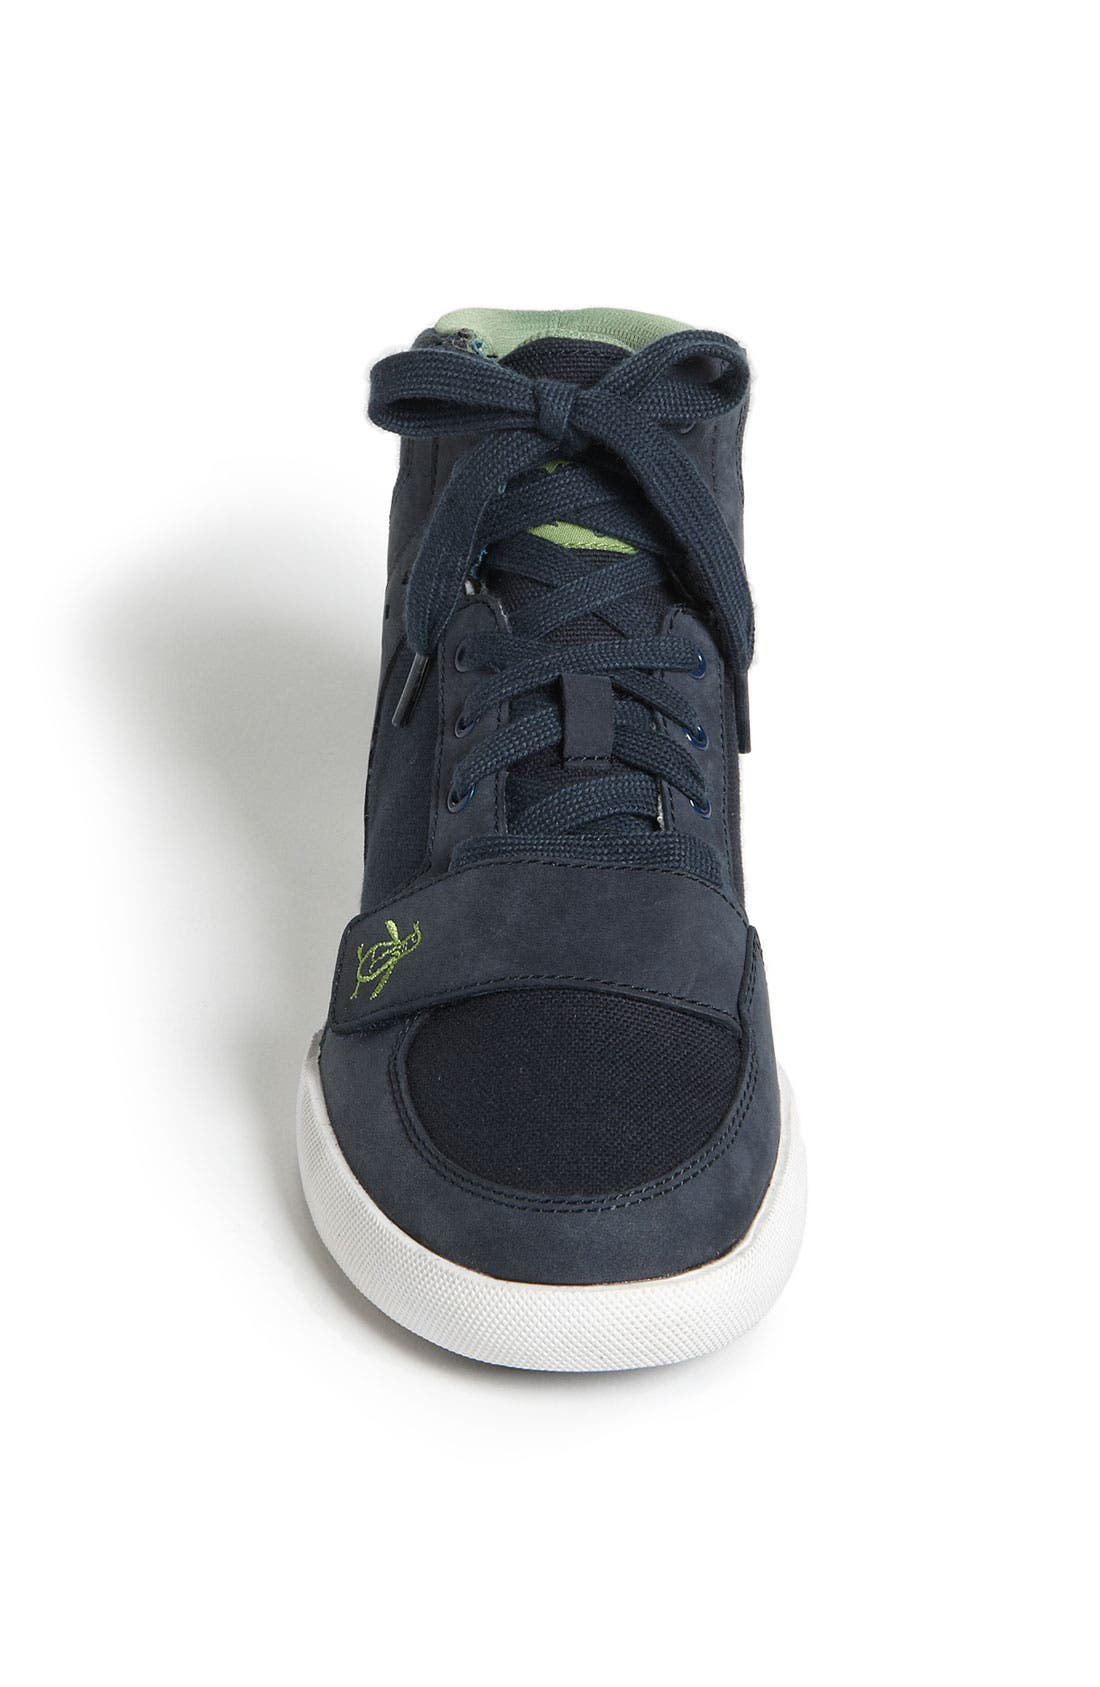 Alternate Image 3  - Original Penguin 'Moby' High Top Sneaker (Men)